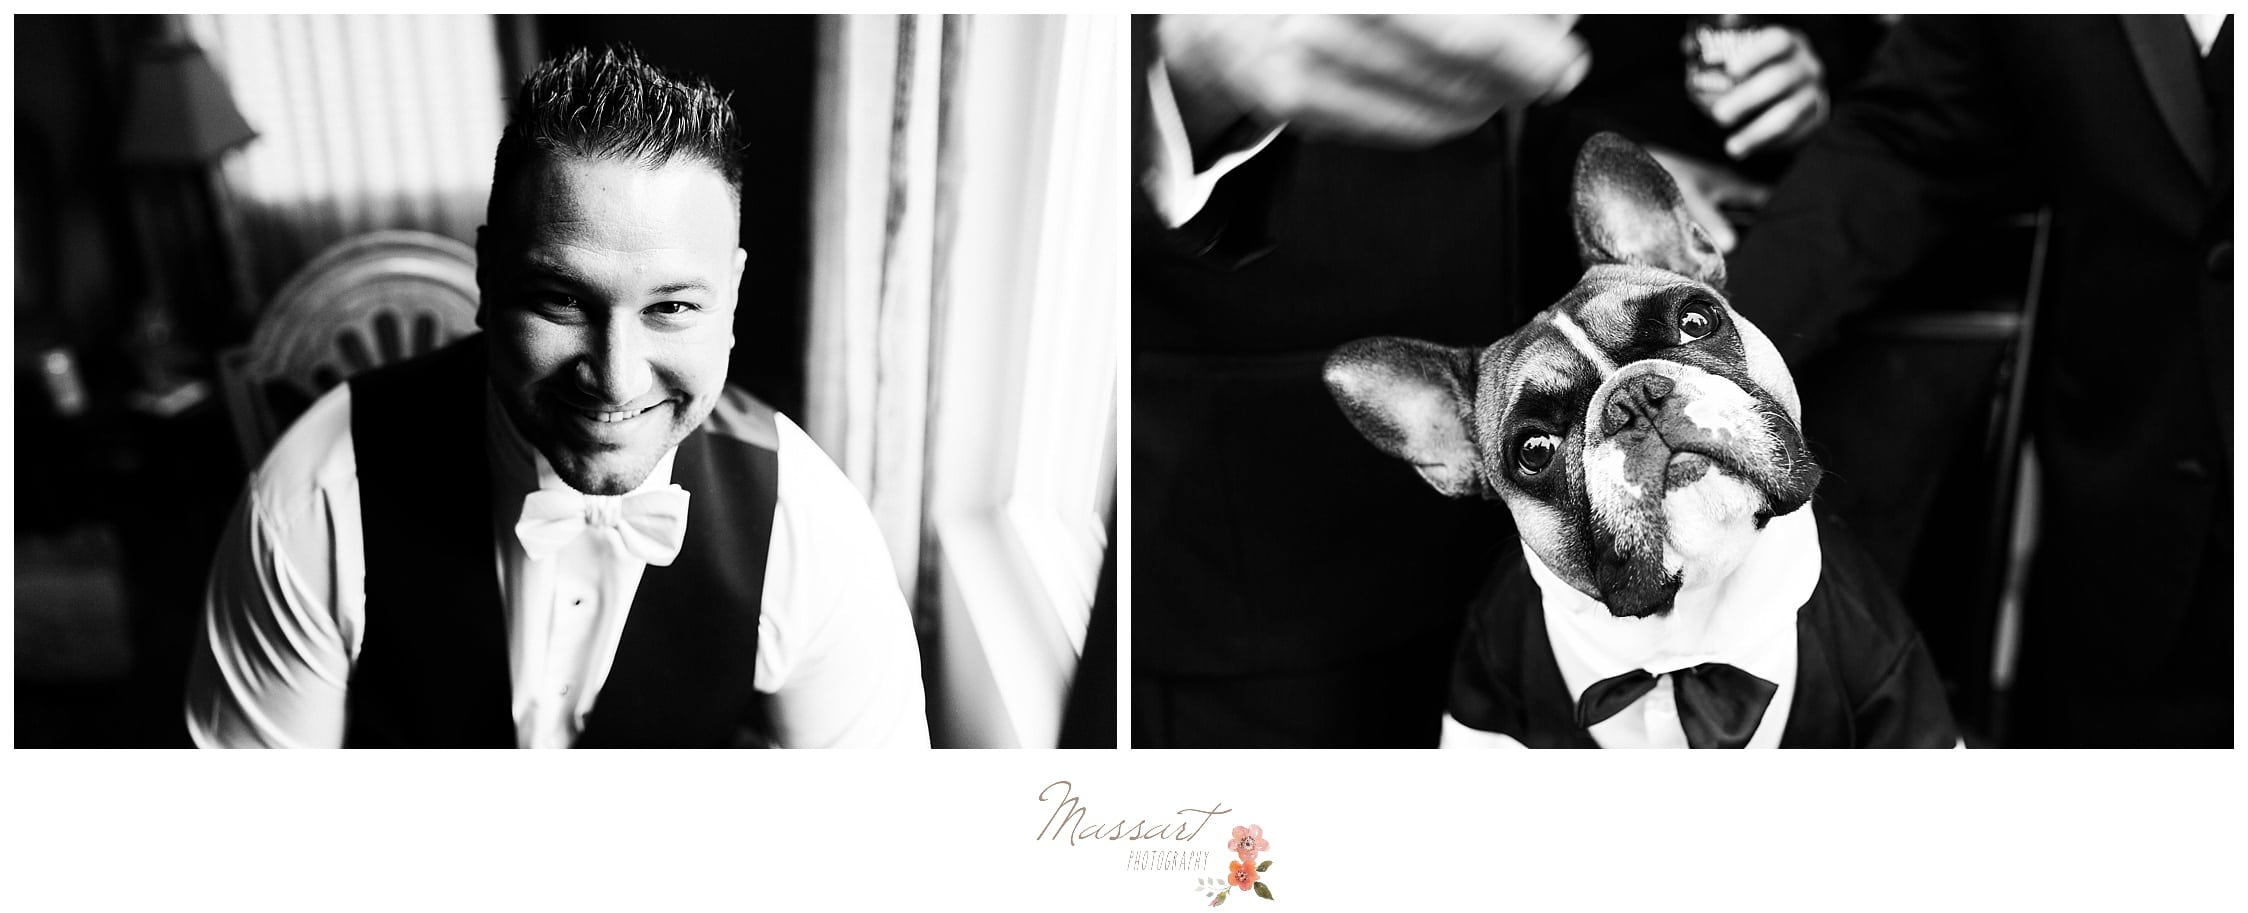 Black and white portraits of the groom and his bulldog before the wedding ceremony photographed by Massart Photography Rhode Island